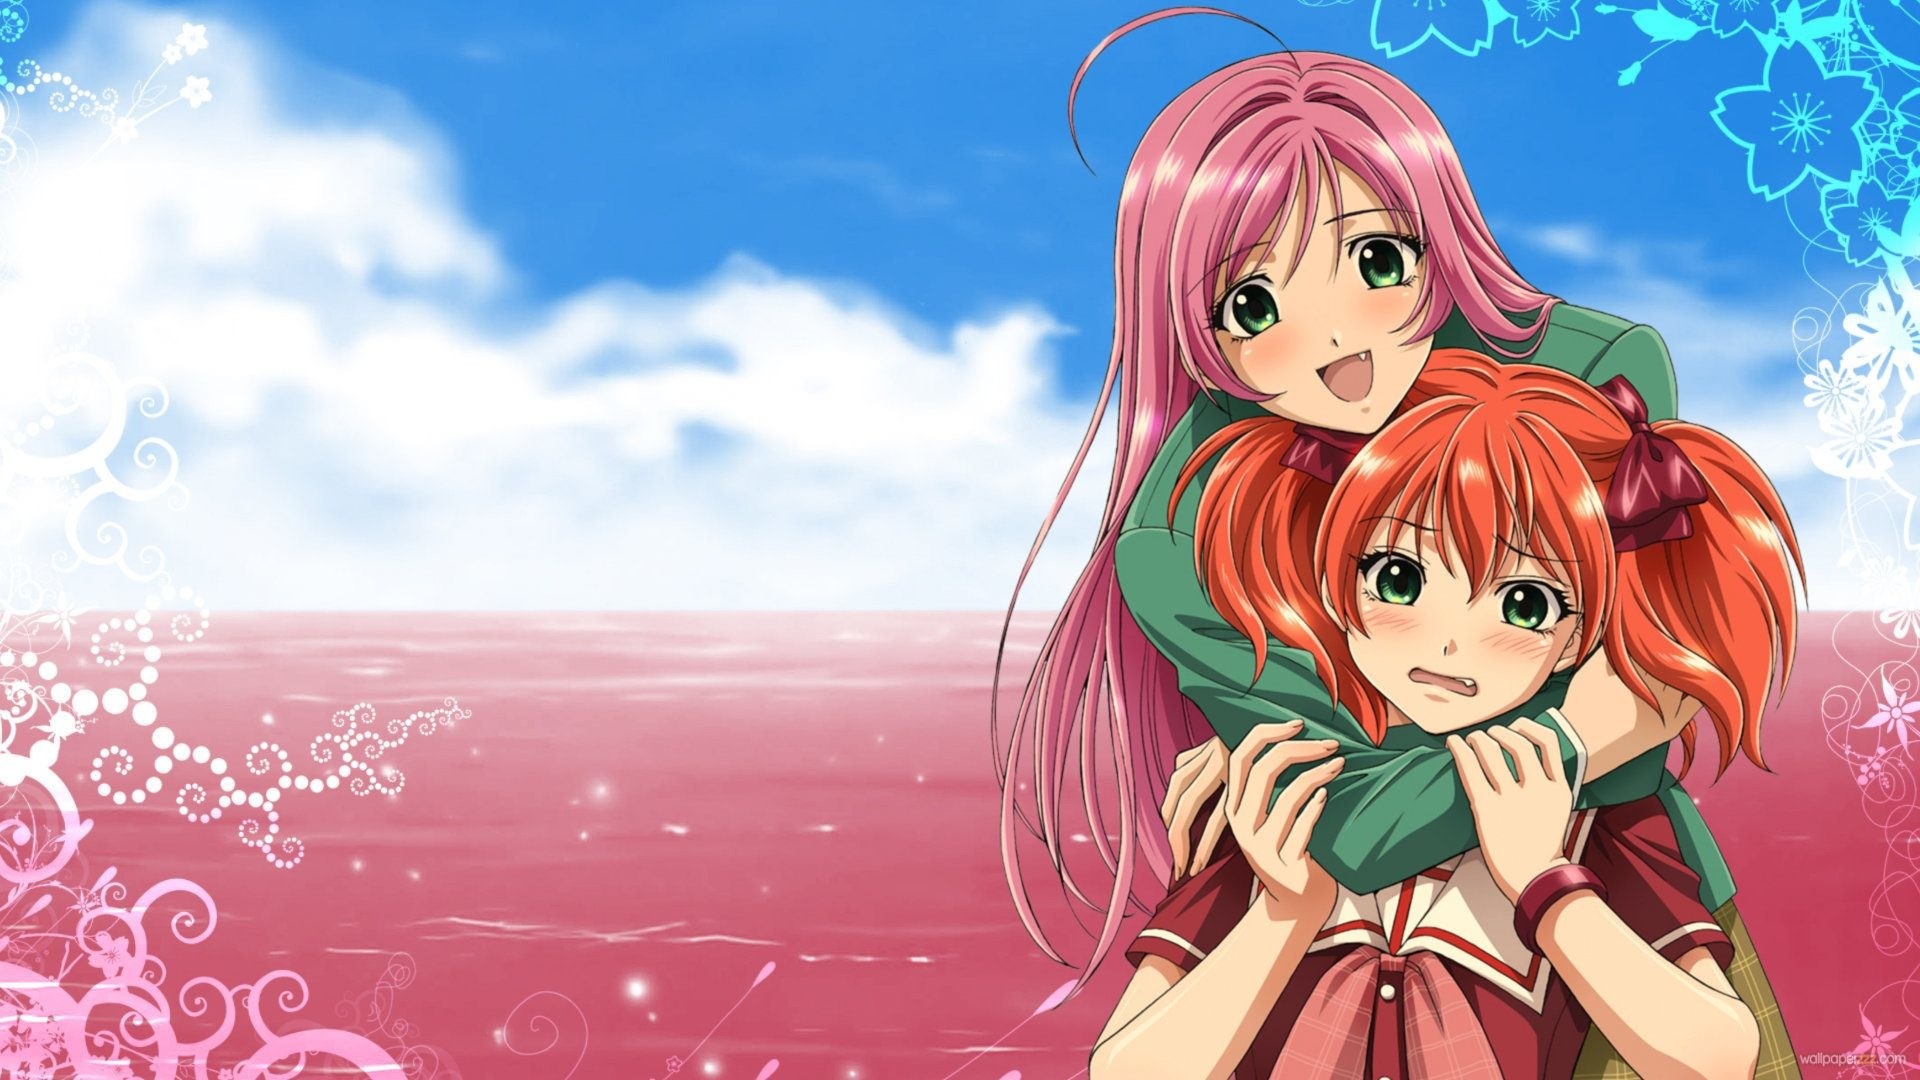 Anime images mac desktop wallpapers hd pictures tablet smart phone